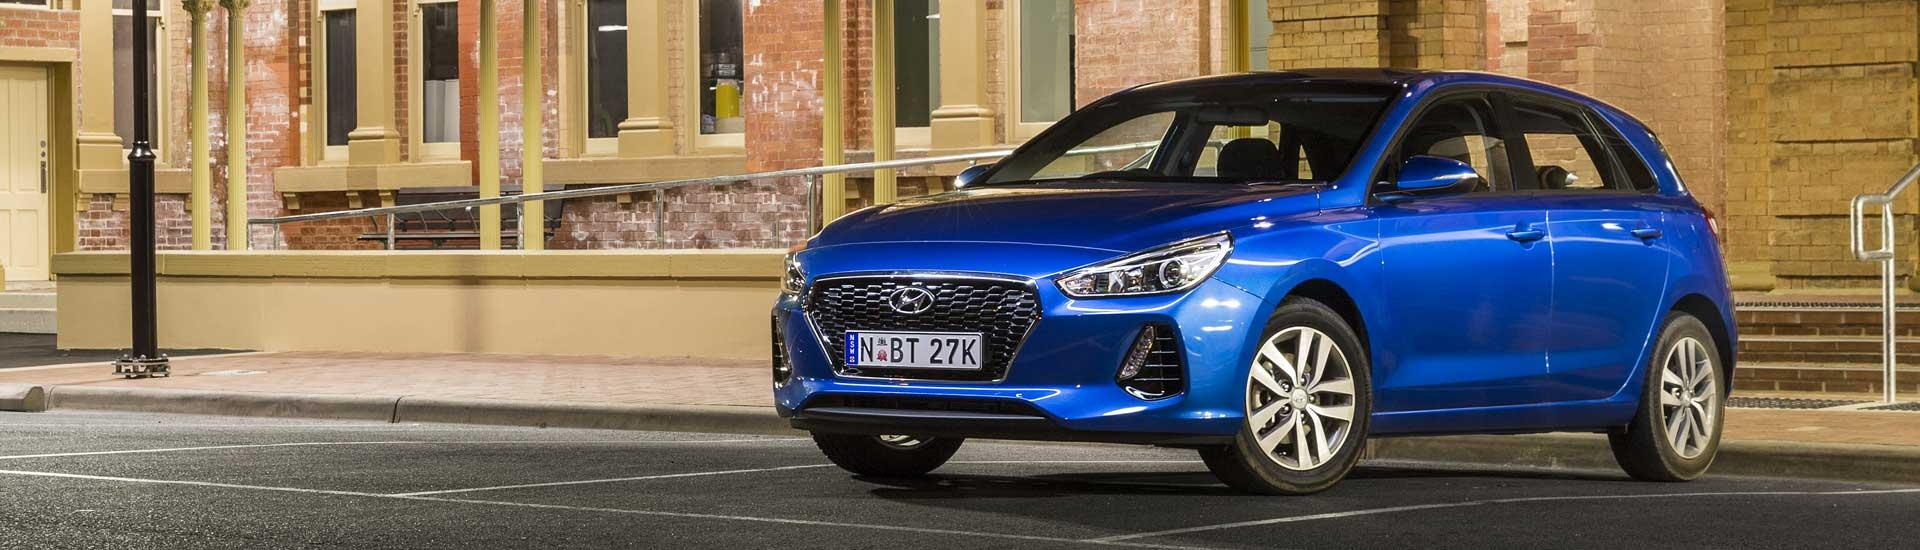 The Hyundai I30 Wins Best Family Car Under 30k In The Carsales Car